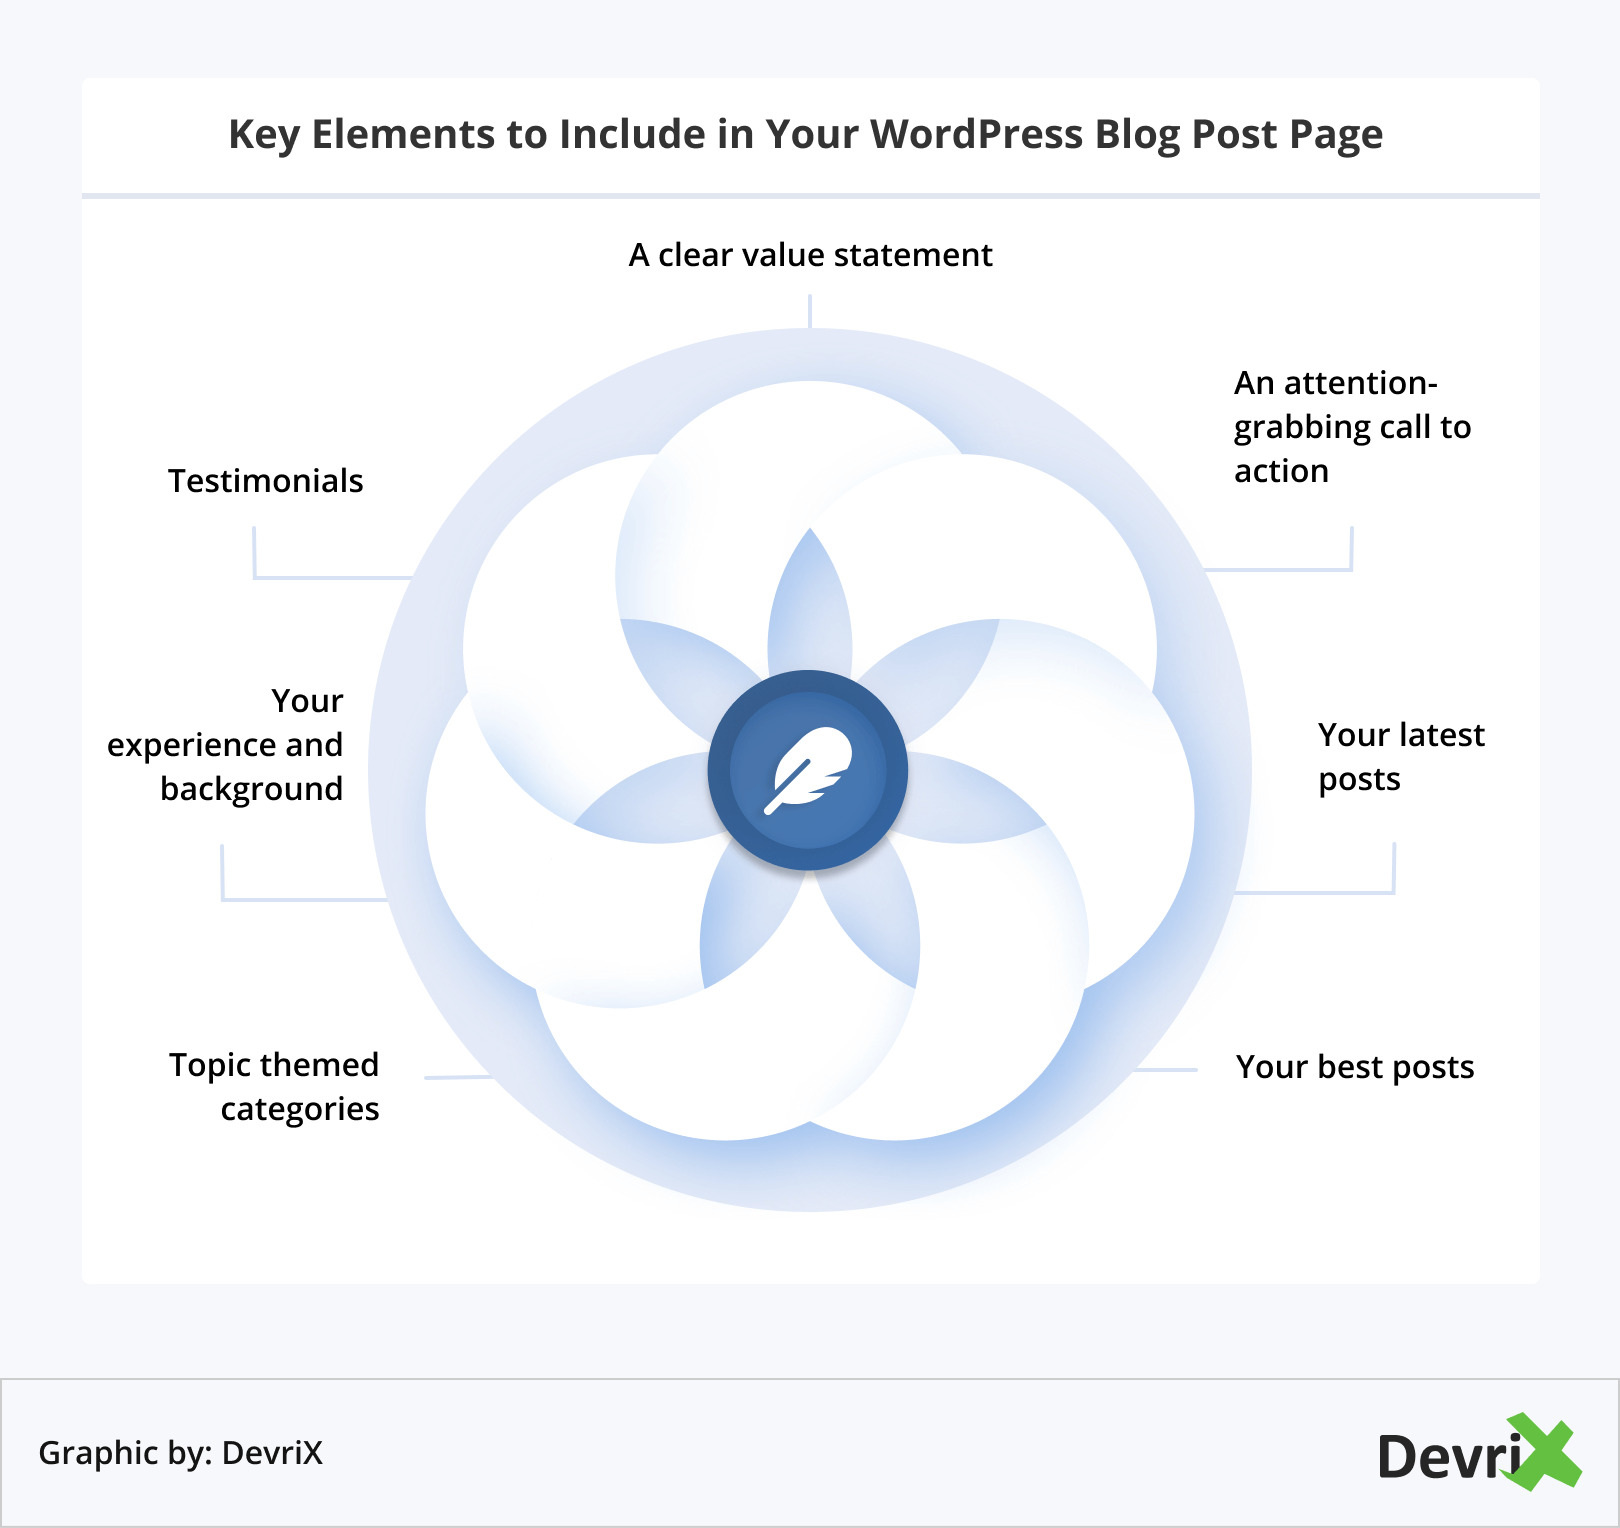 Key Elements to Include in Your WordPress Blog Post Page